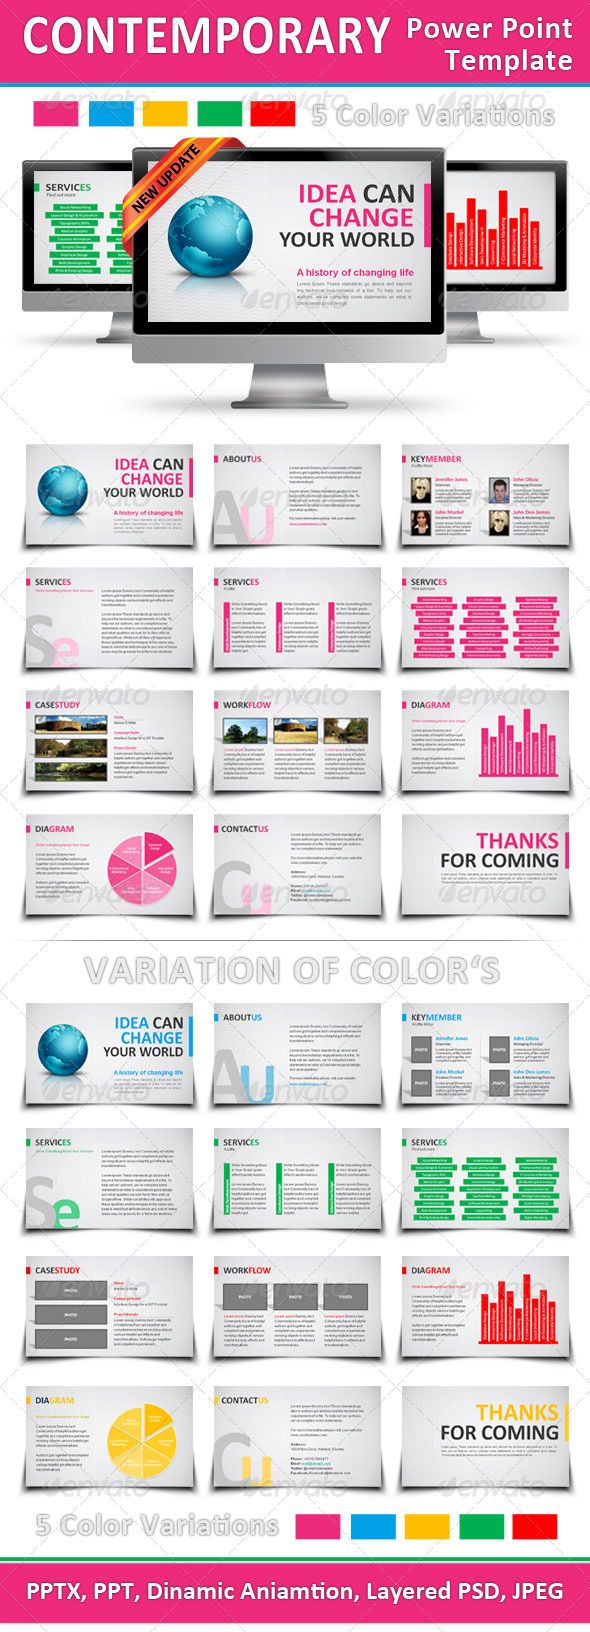 17 best ideas about power point templates contemporary power point template